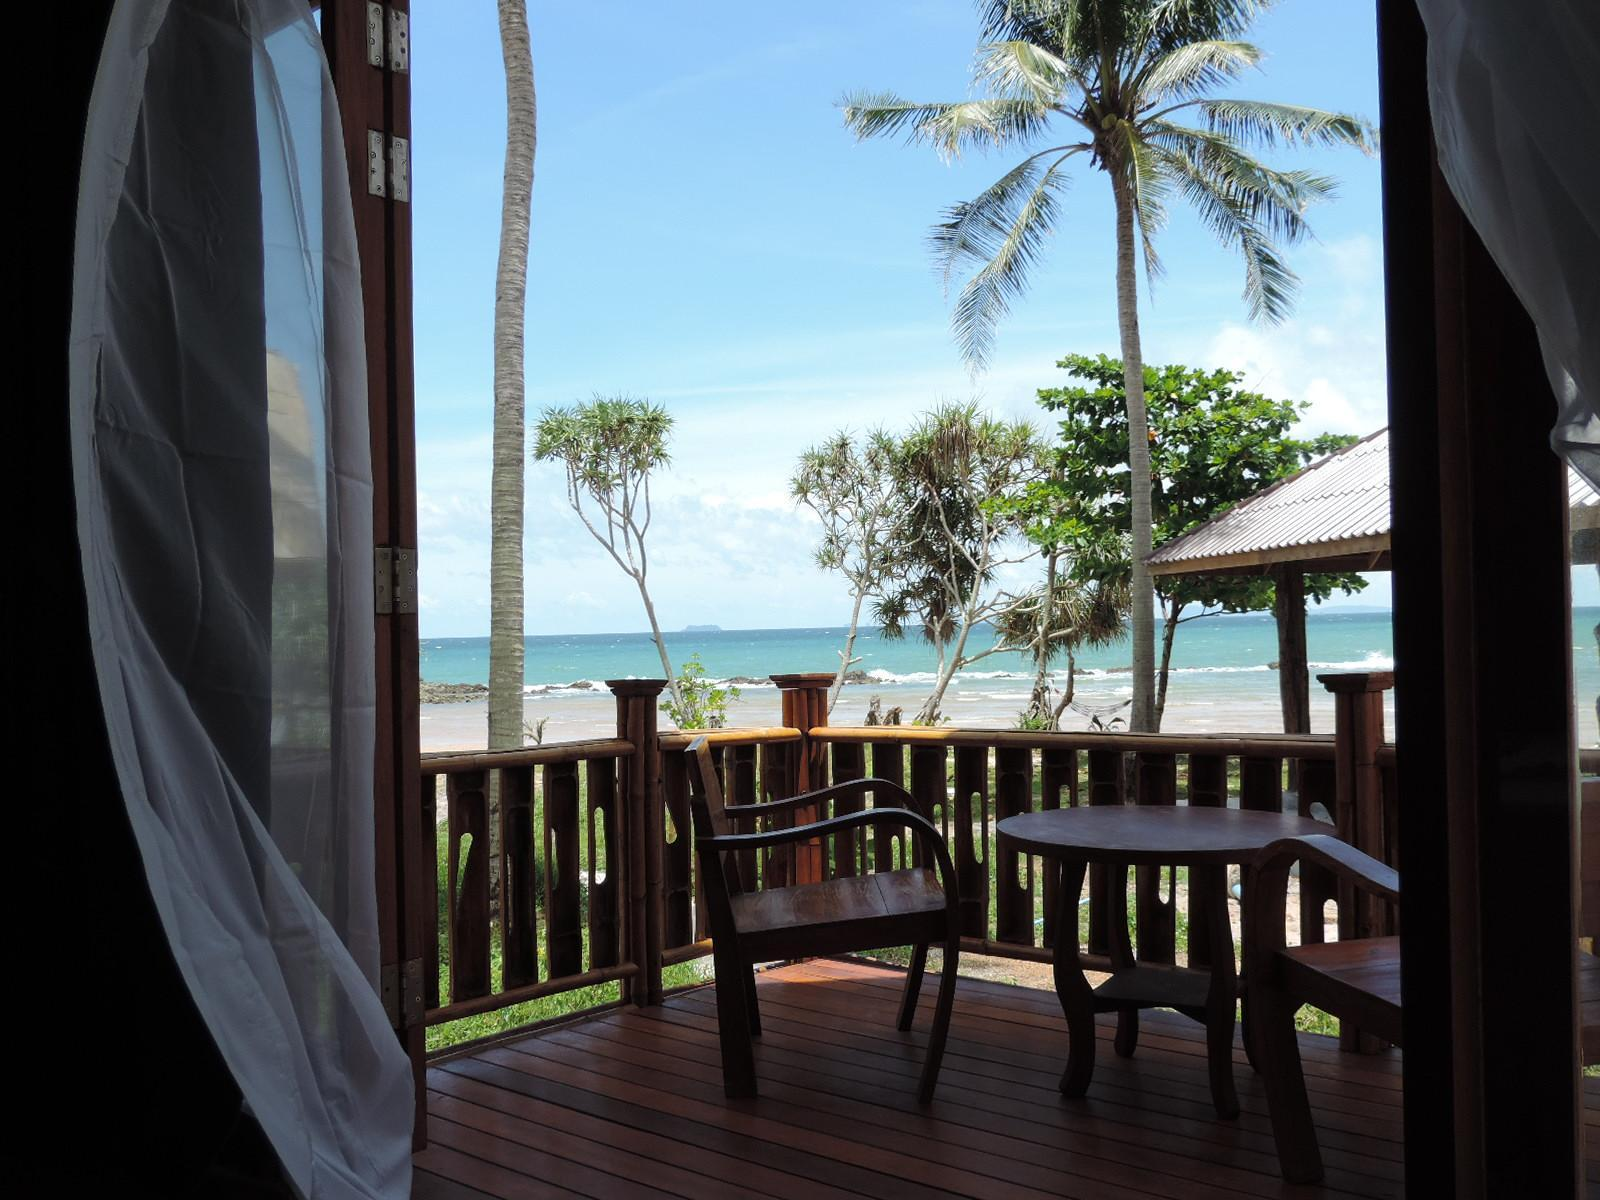 Lazy Days Bungalows - Koh Lanta